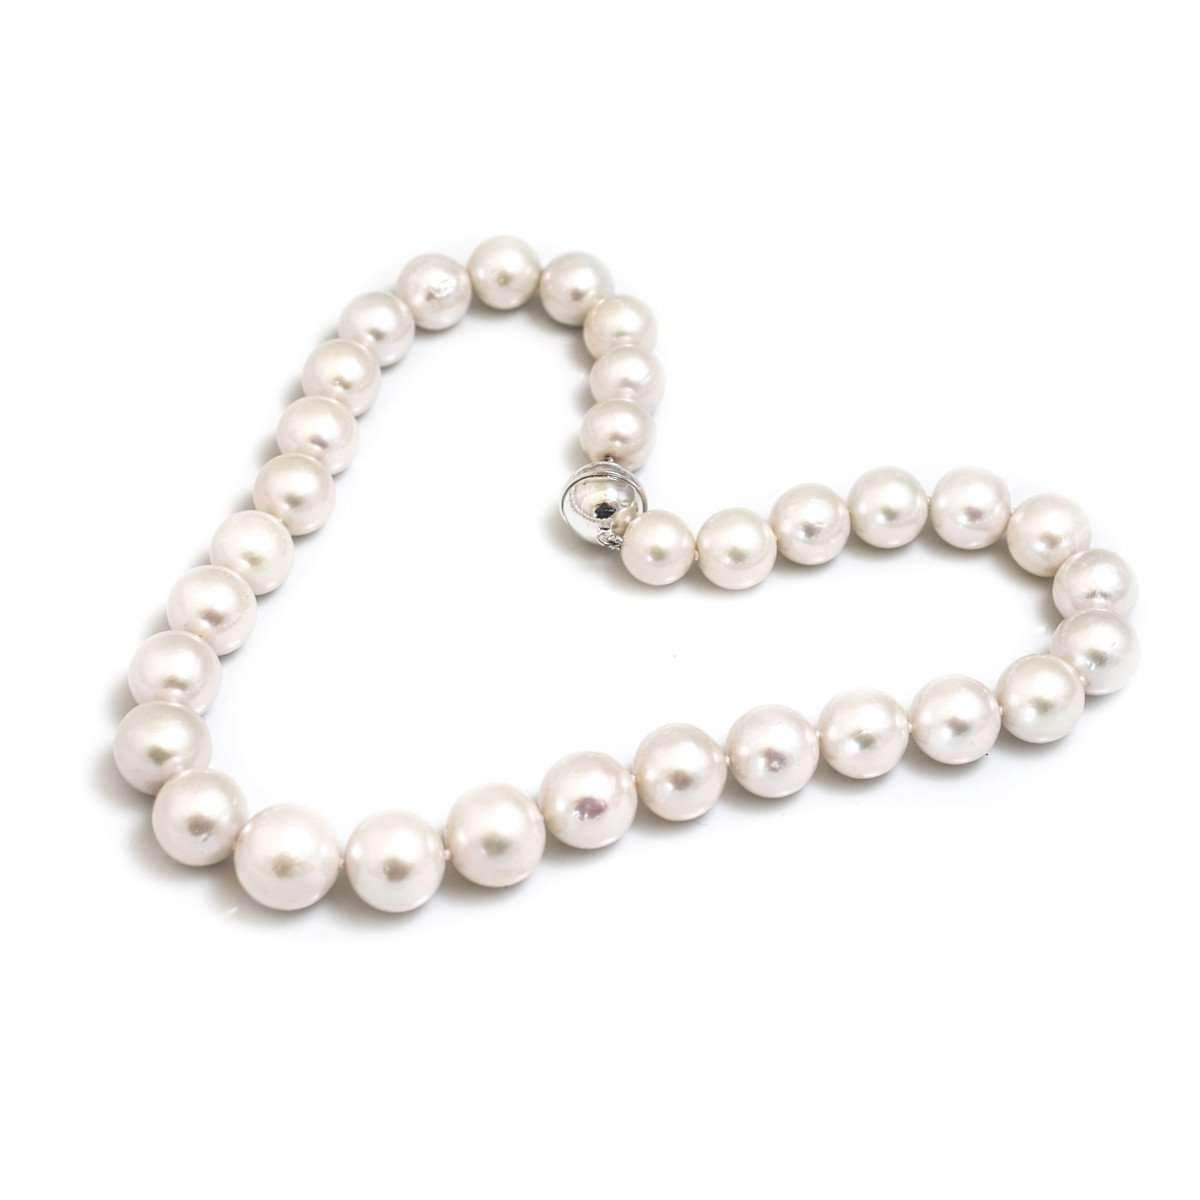 White Lustre AAA Graded Pearl Necklace